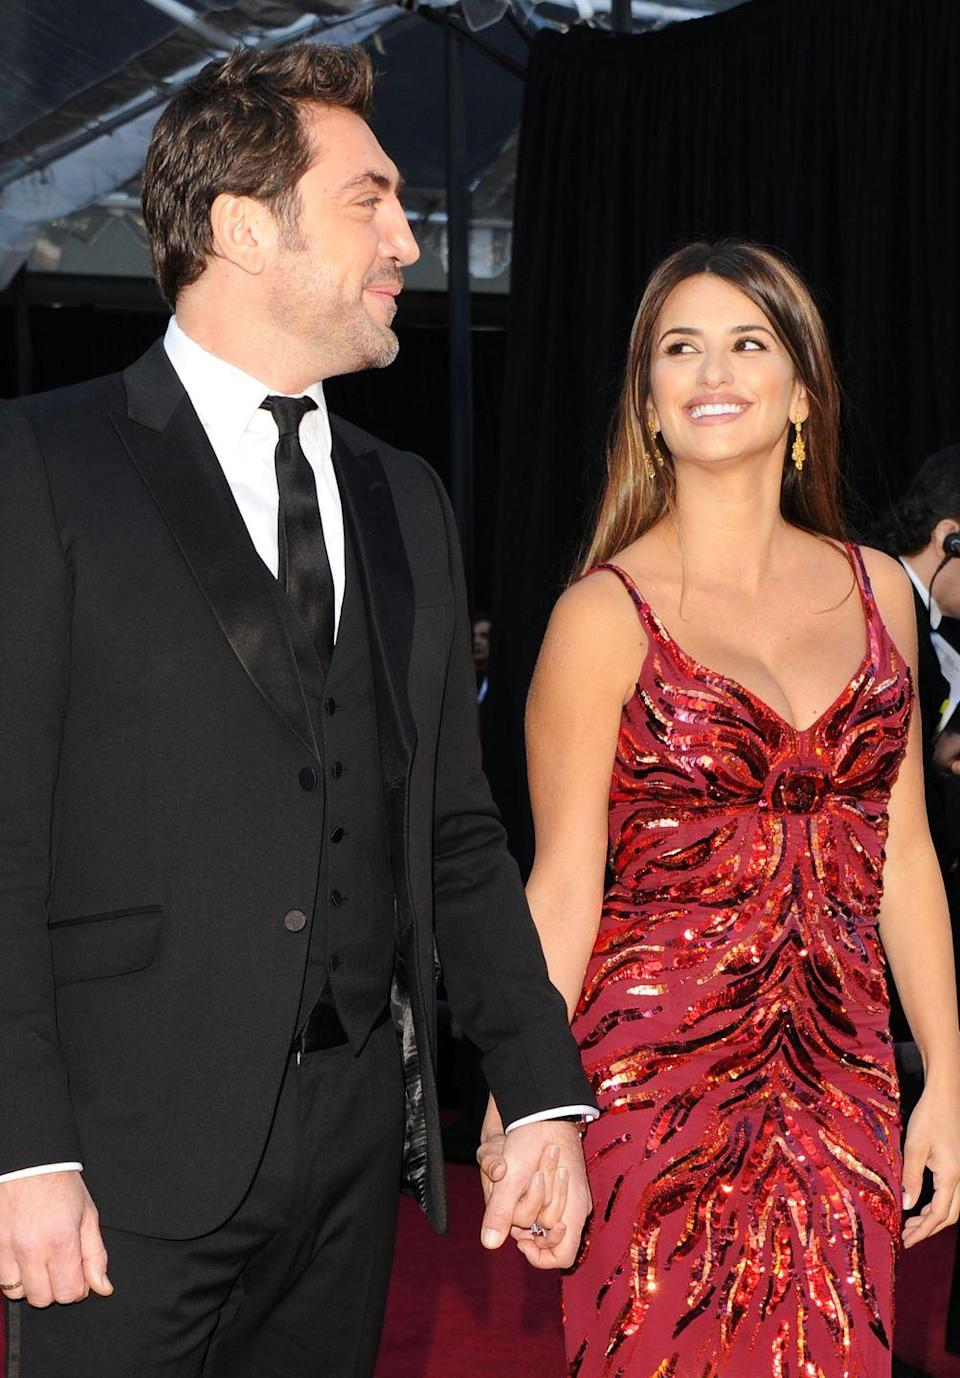 <p>Despite being a famous Hollywood couple, Penelope Cruz and Javier Bardem don't like to flaunt their romance in front of the public and their wedding was no different. The couple wed in an intimate ceremony back in 2010 at a friend's home in the Bahamas. They also are parents to two children together.</p>